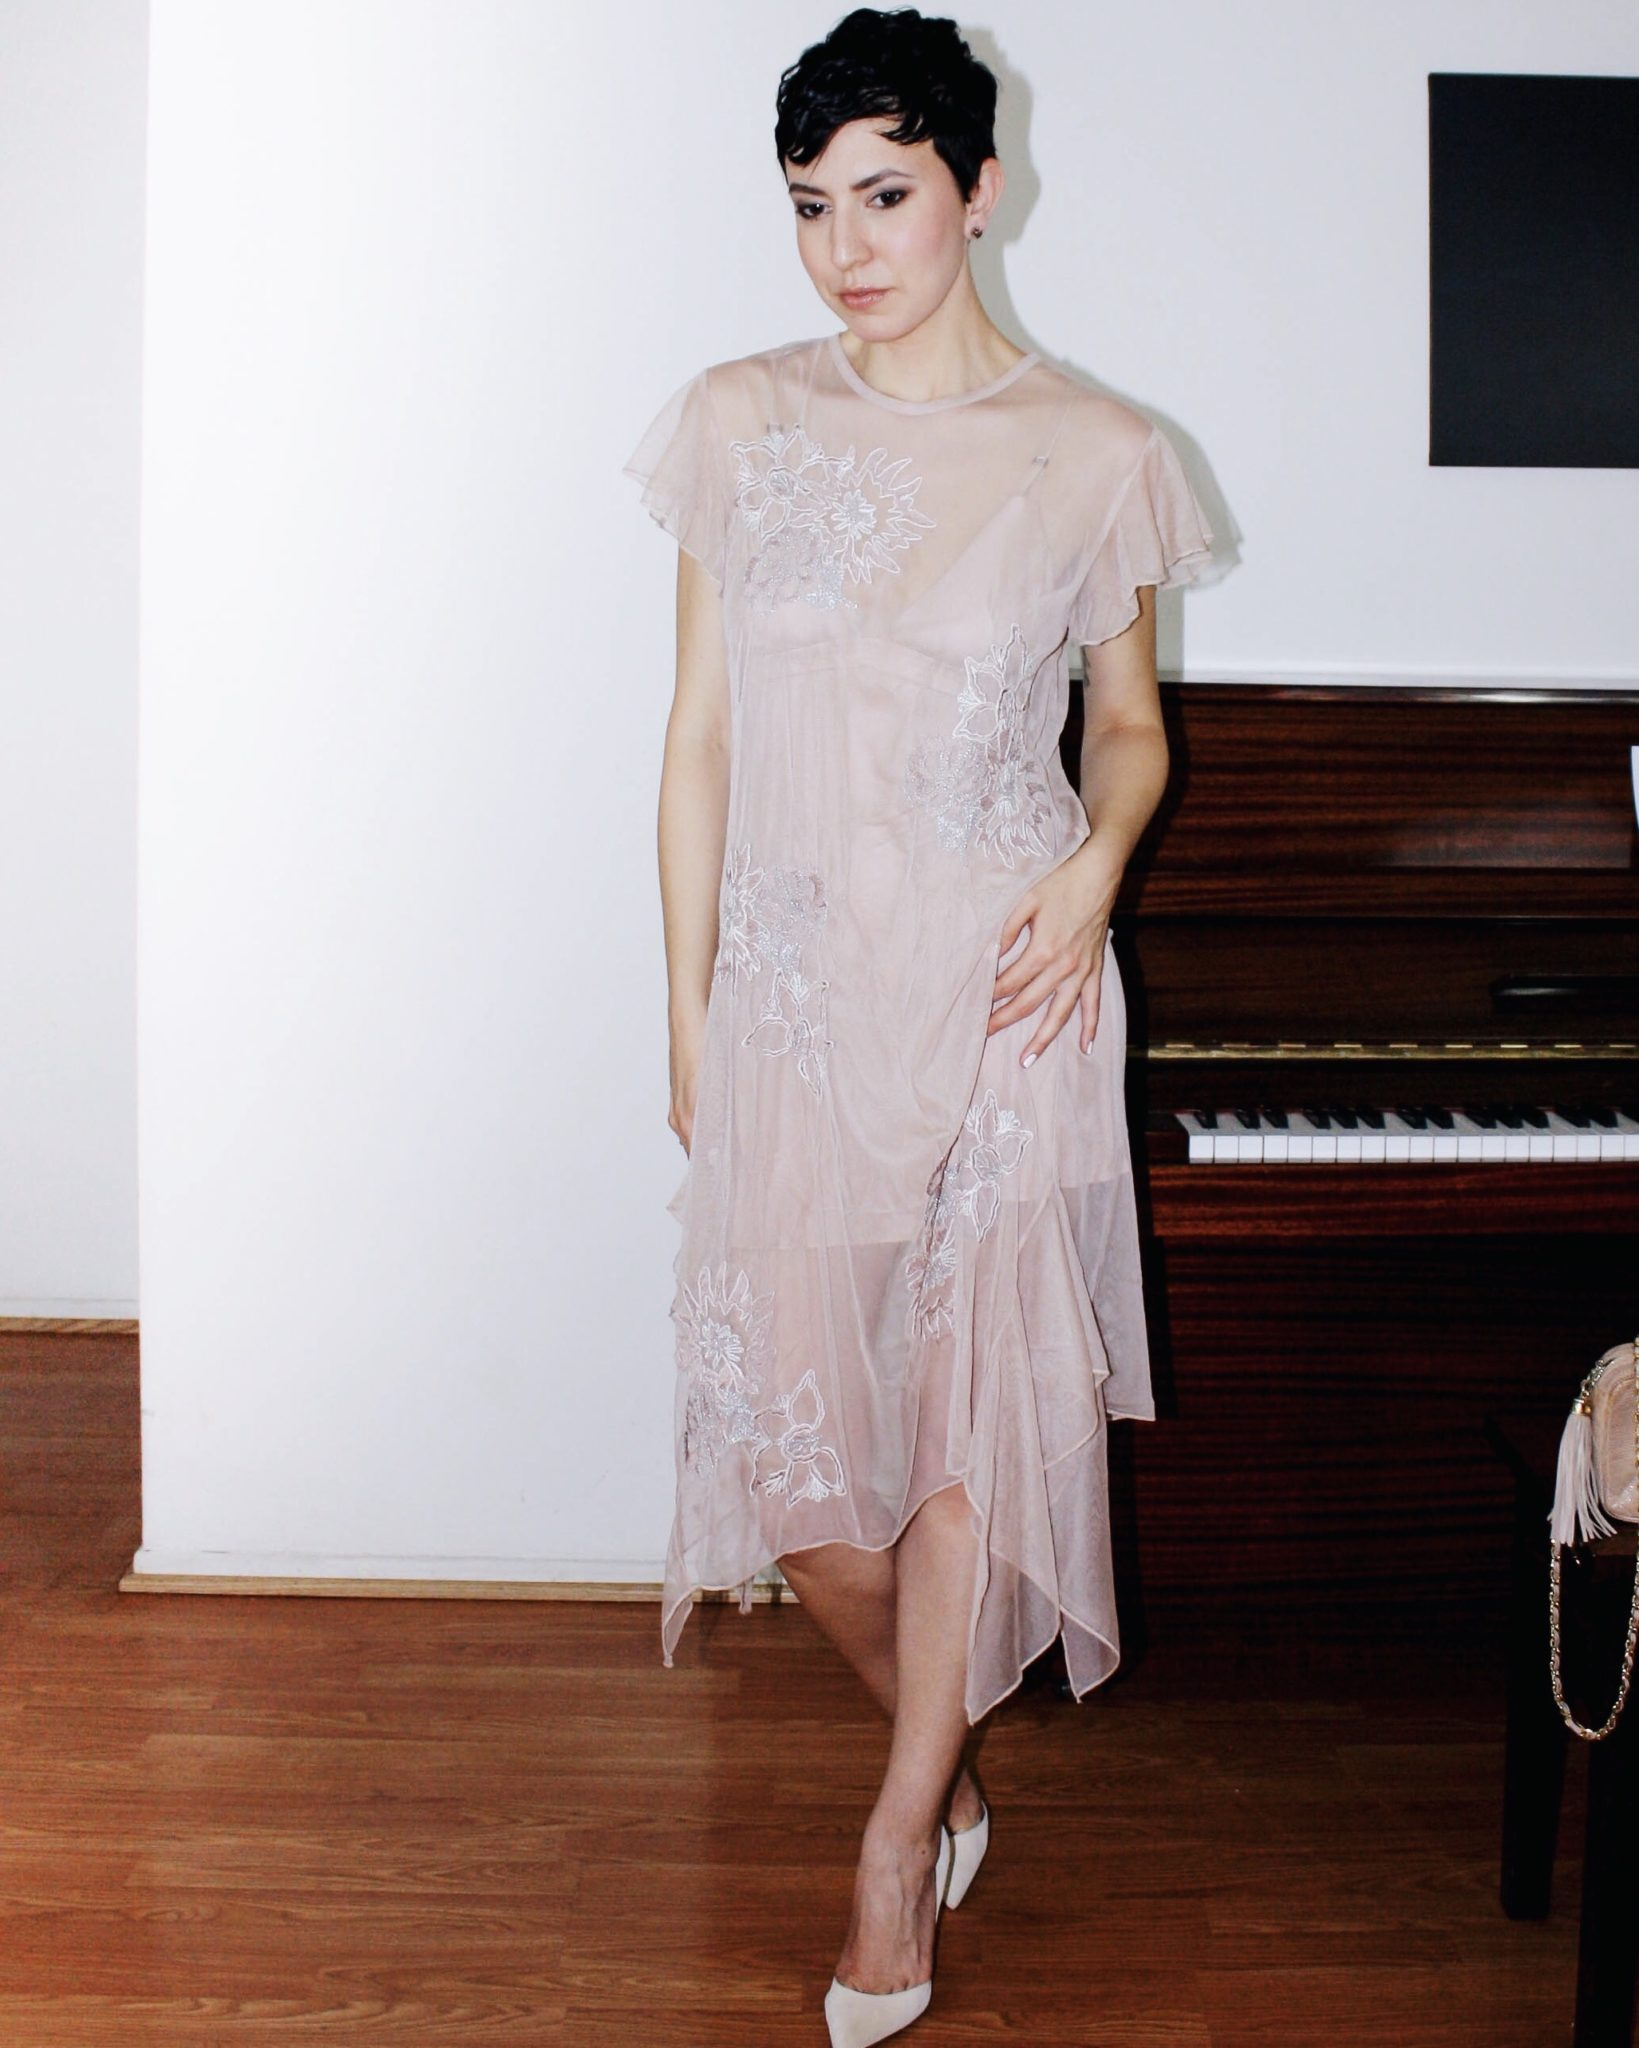 zara dress tulle naked dress embroidery chanel bag suede shoes giambattista valli 6